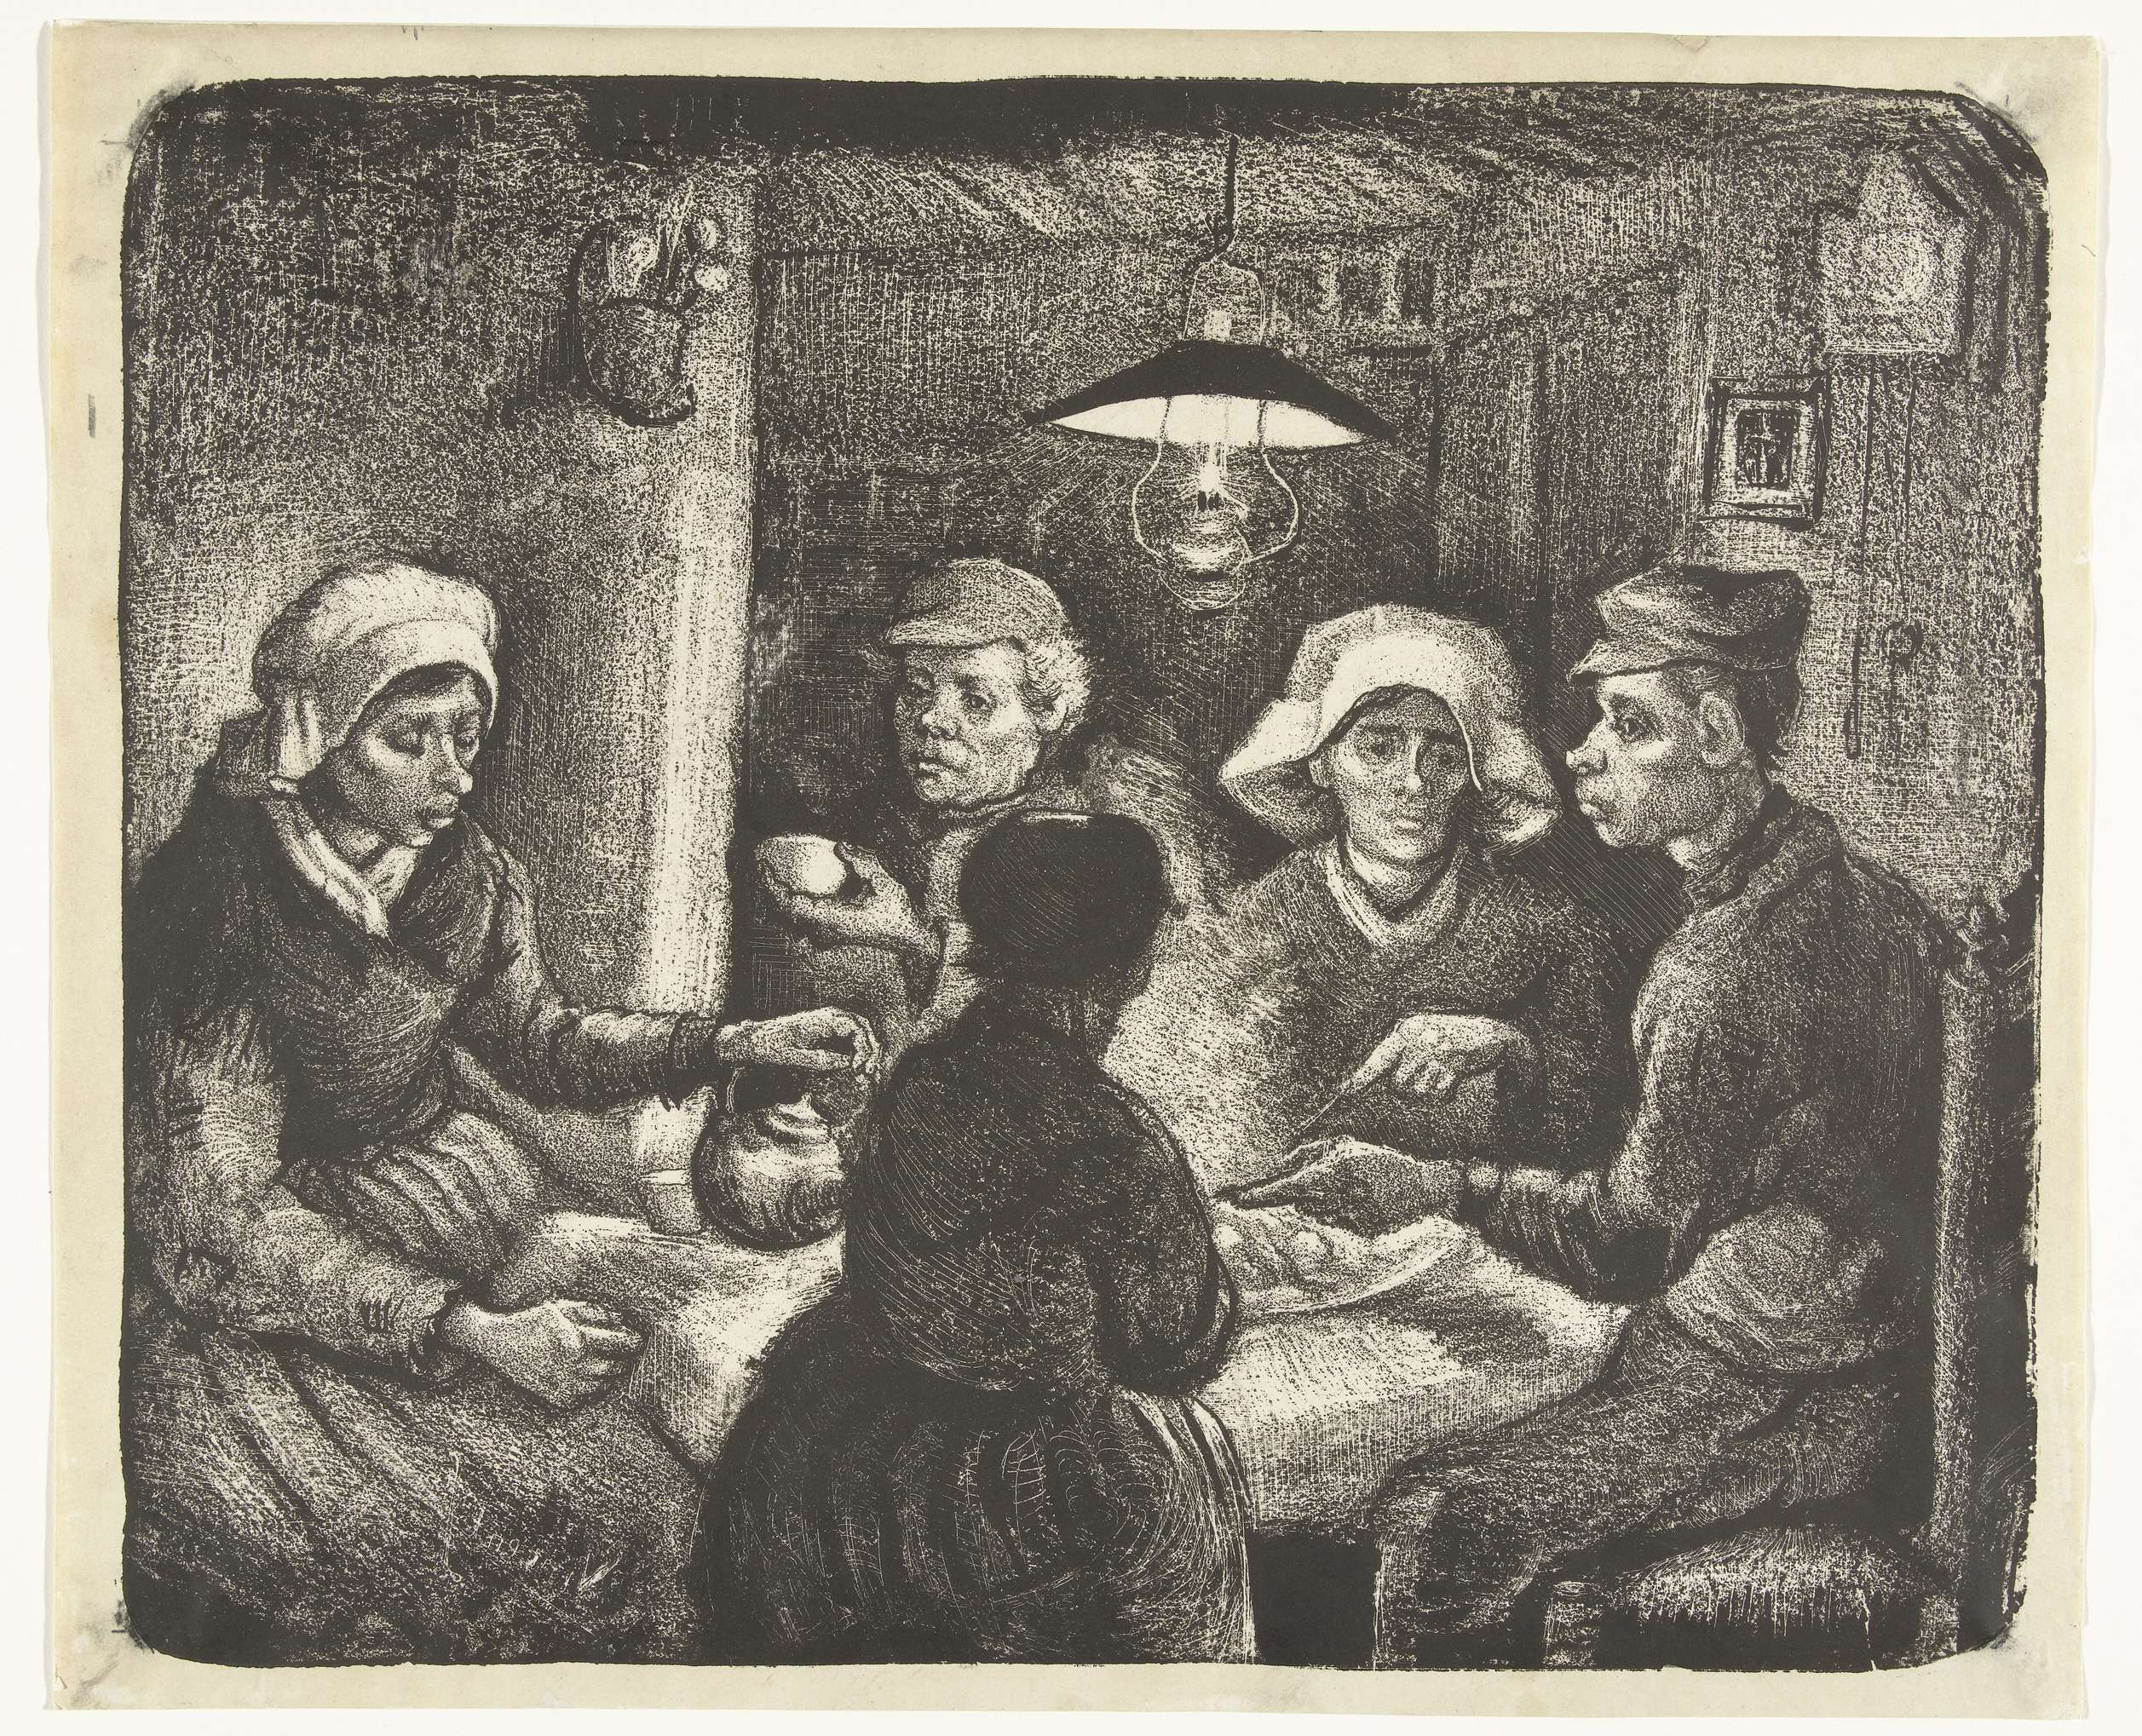 https://upload.wikimedia.org/wikipedia/commons/d/db/The_Potato_Eaters_-_Lithography_by_Vincent_van_Gogh.jpg